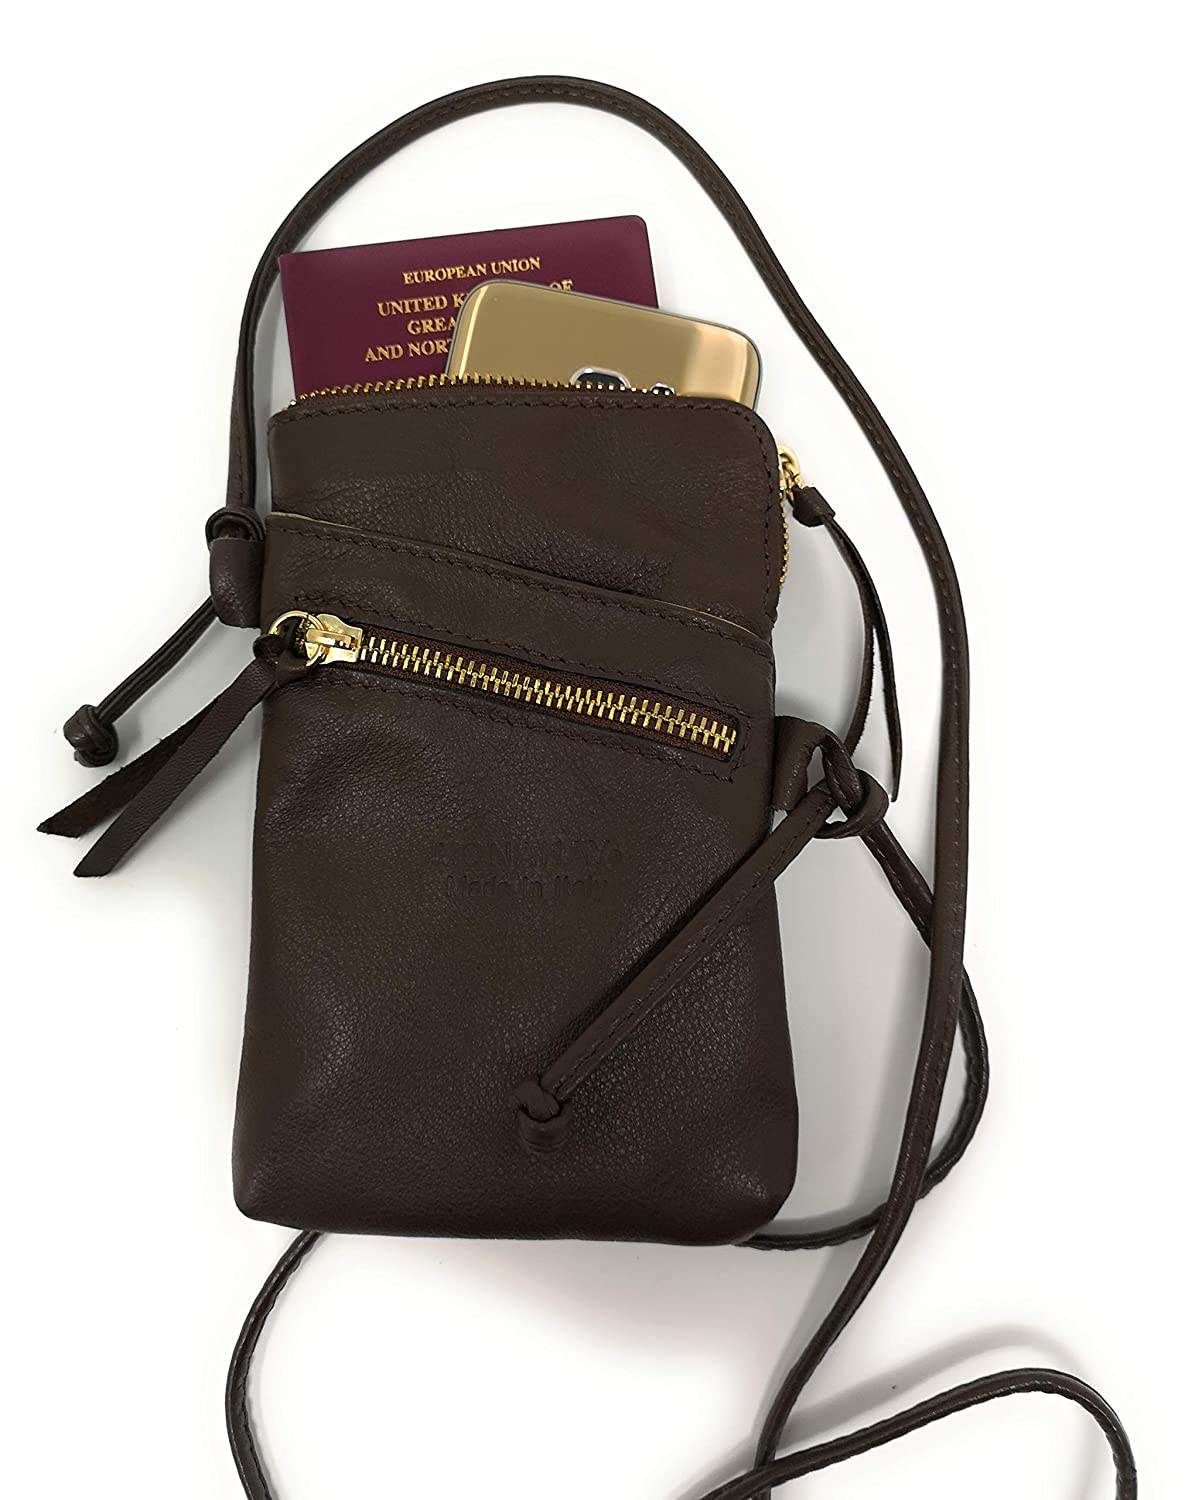 Monahay Small Italian Leather Cross Body Mobile Phone and Passport Travel Pouch Bag MH9723